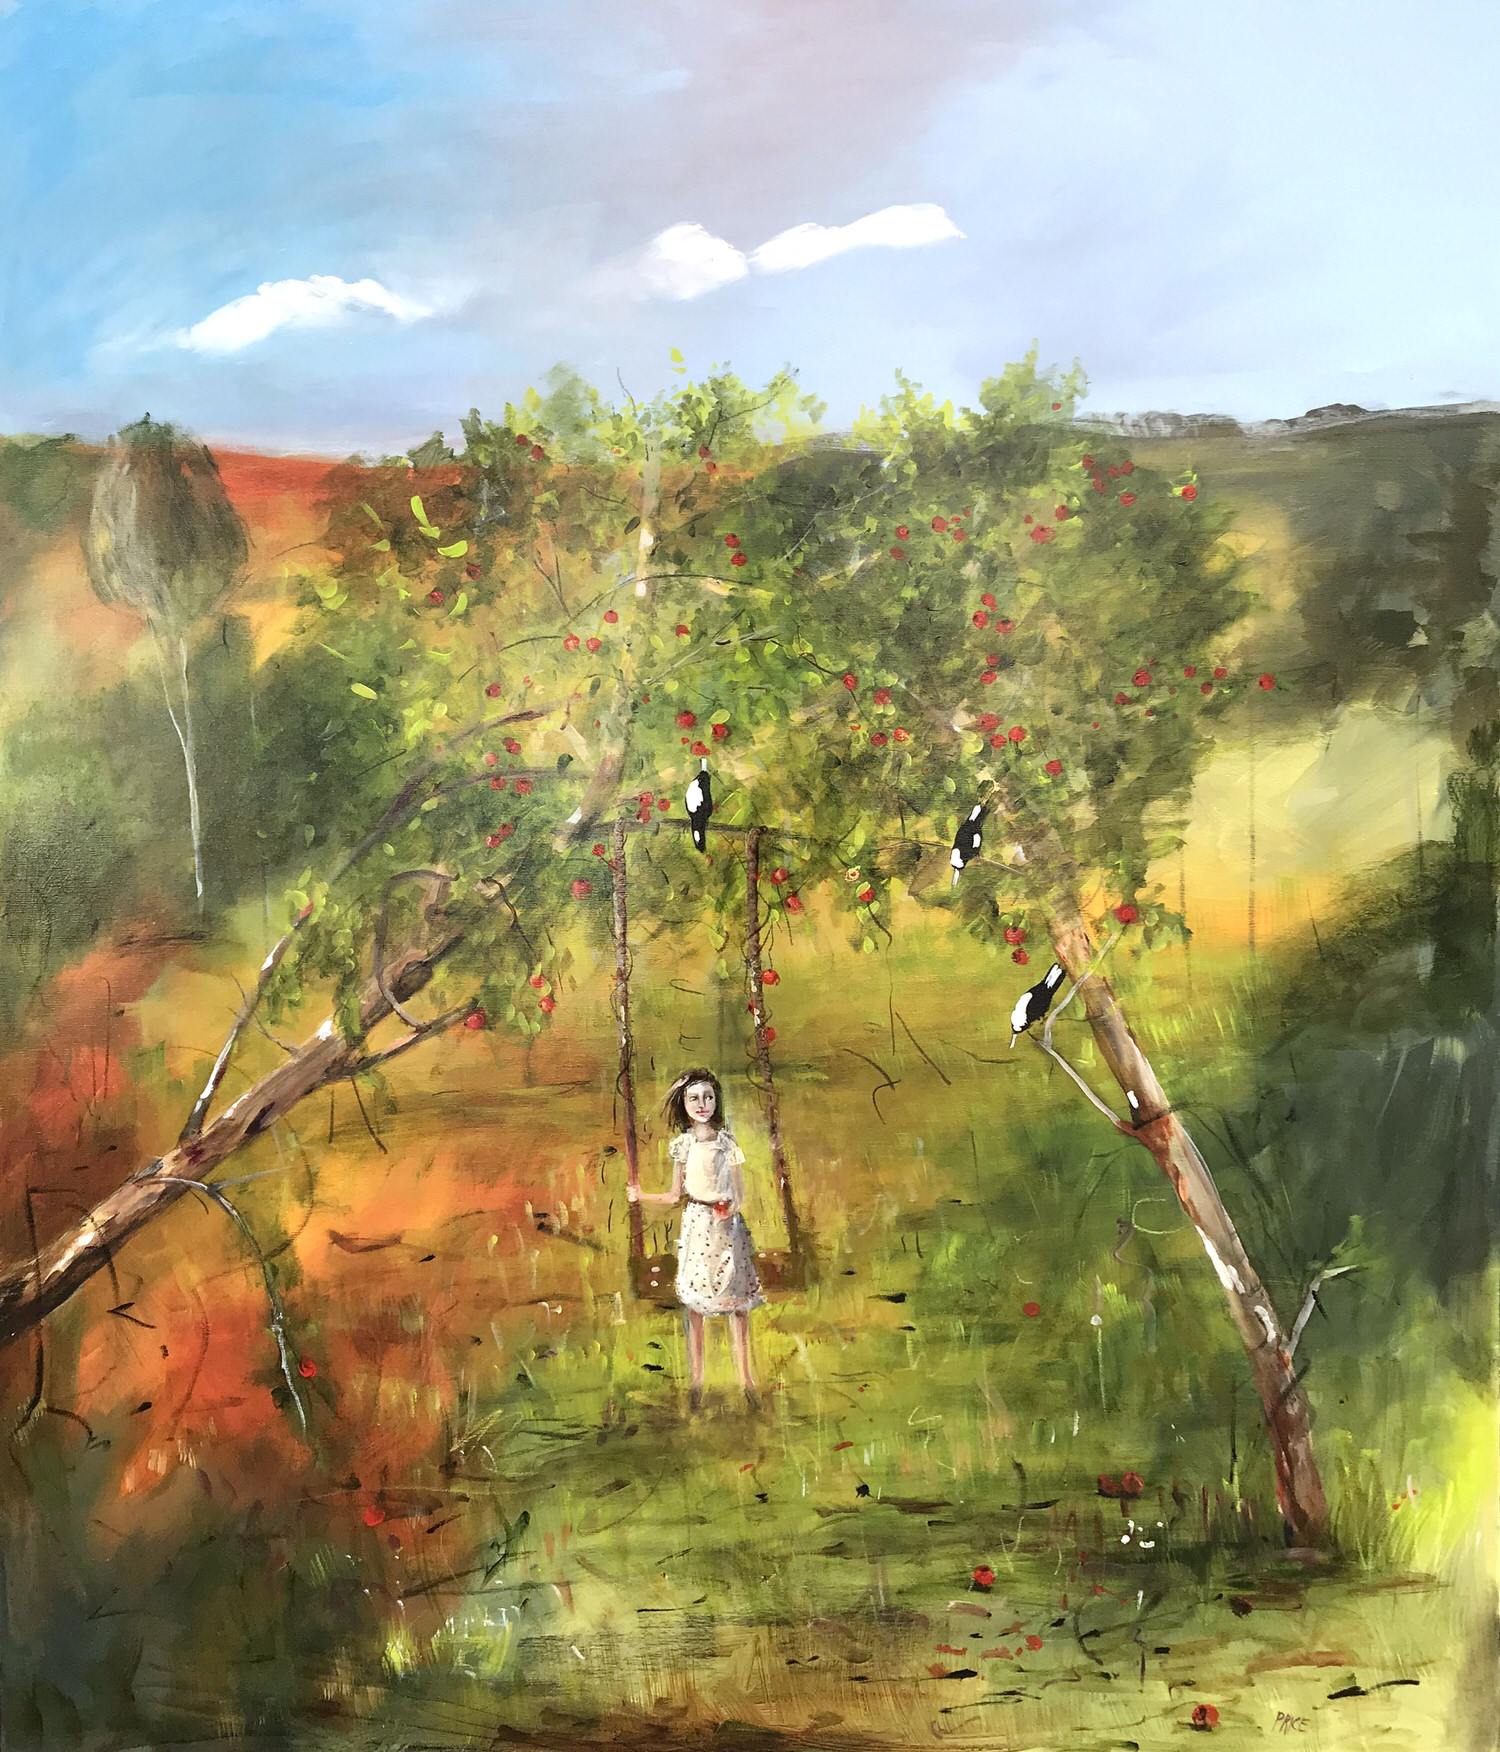 Terry Pauline PriceThe Old Orchard, 2019 Mixed Media on Canvas 152 x 122 cm.jpg